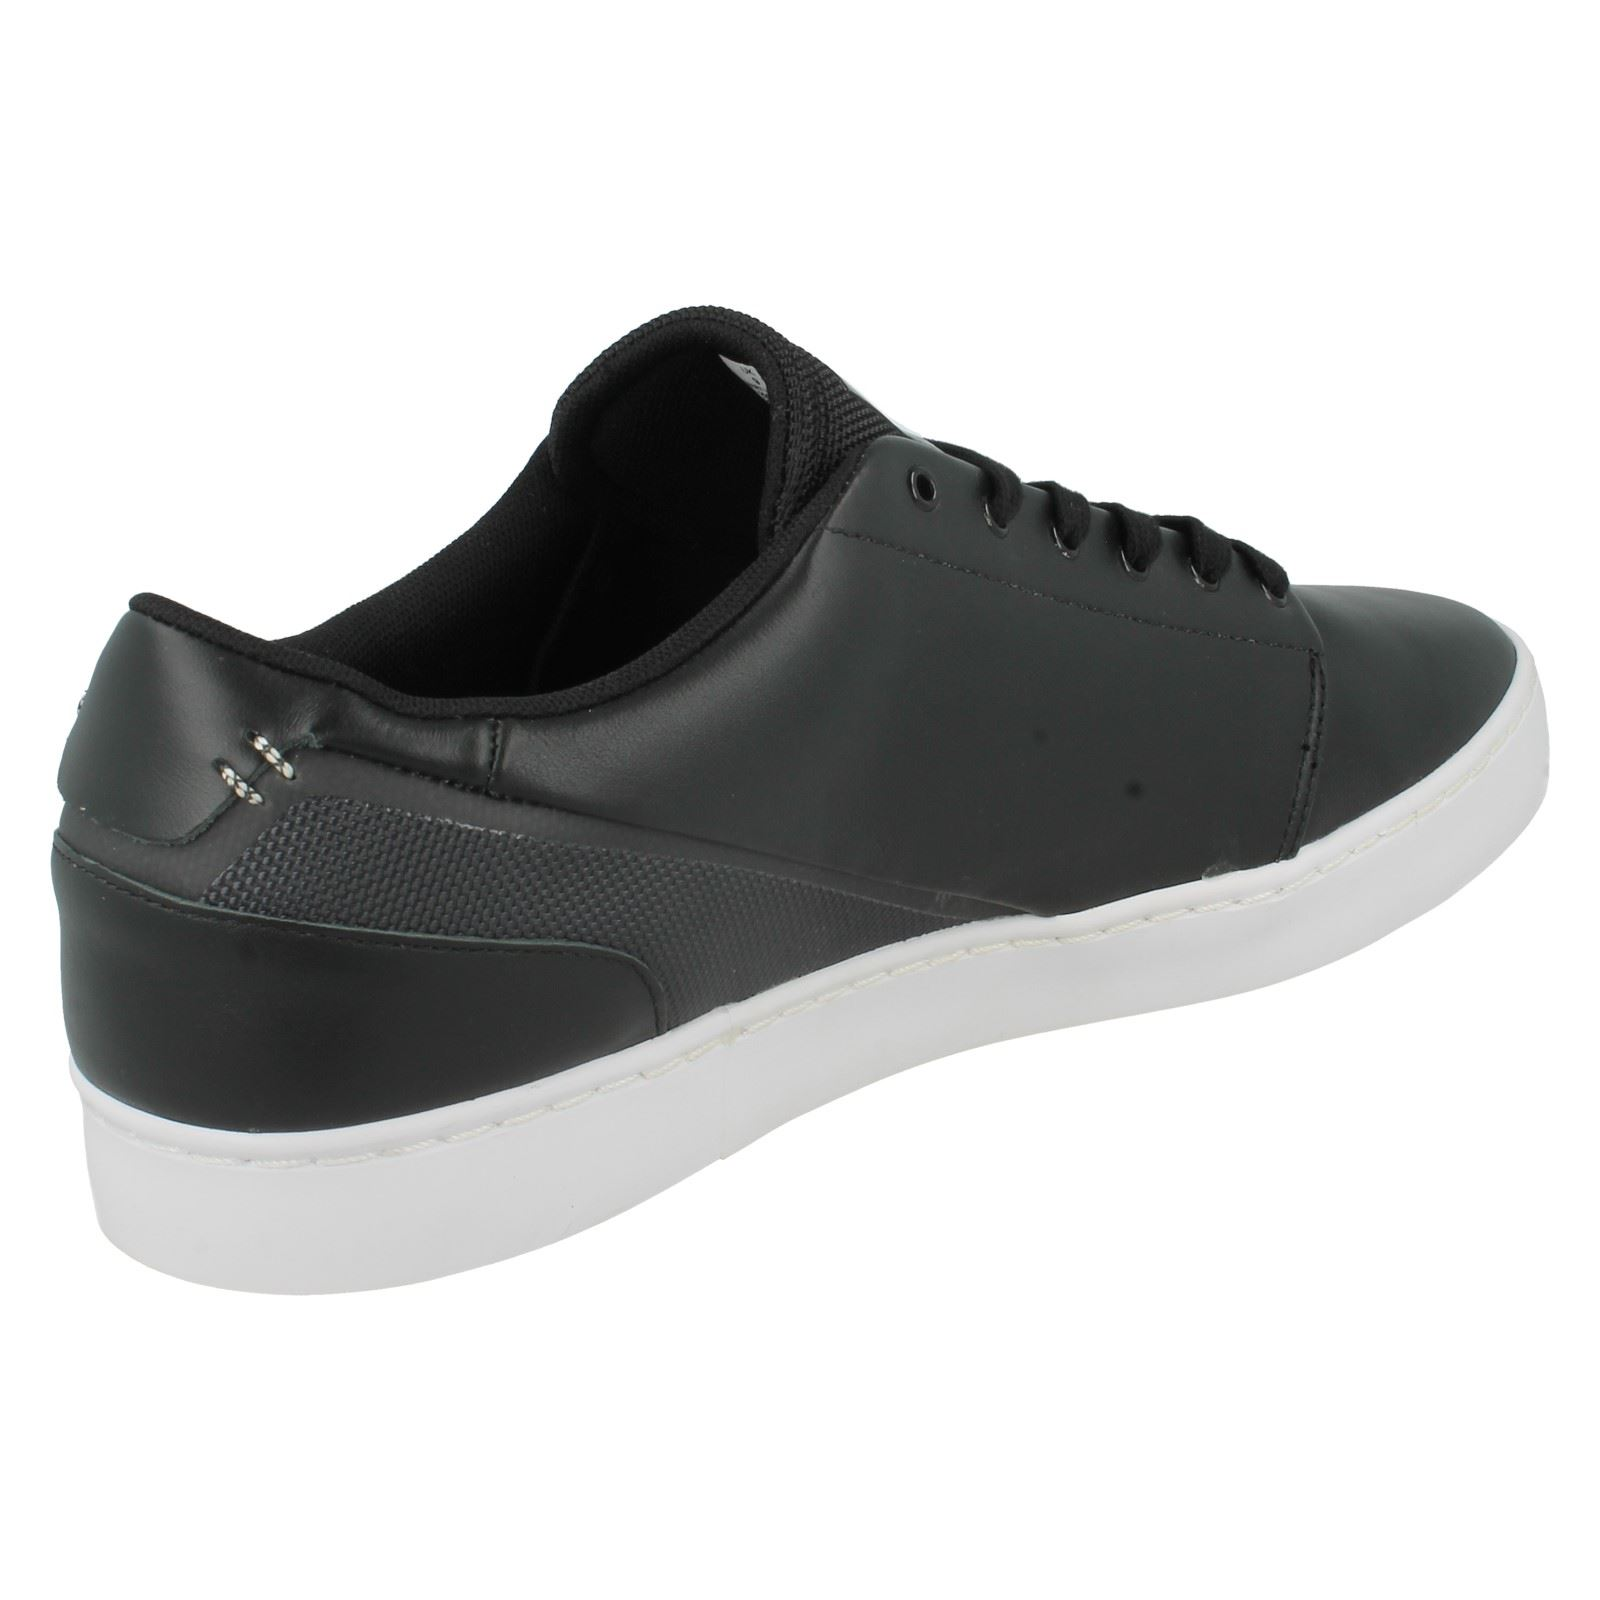 Uomo Lacoste Trainers FLX Style - Court Legacy FLX Trainers SPM ae61ba